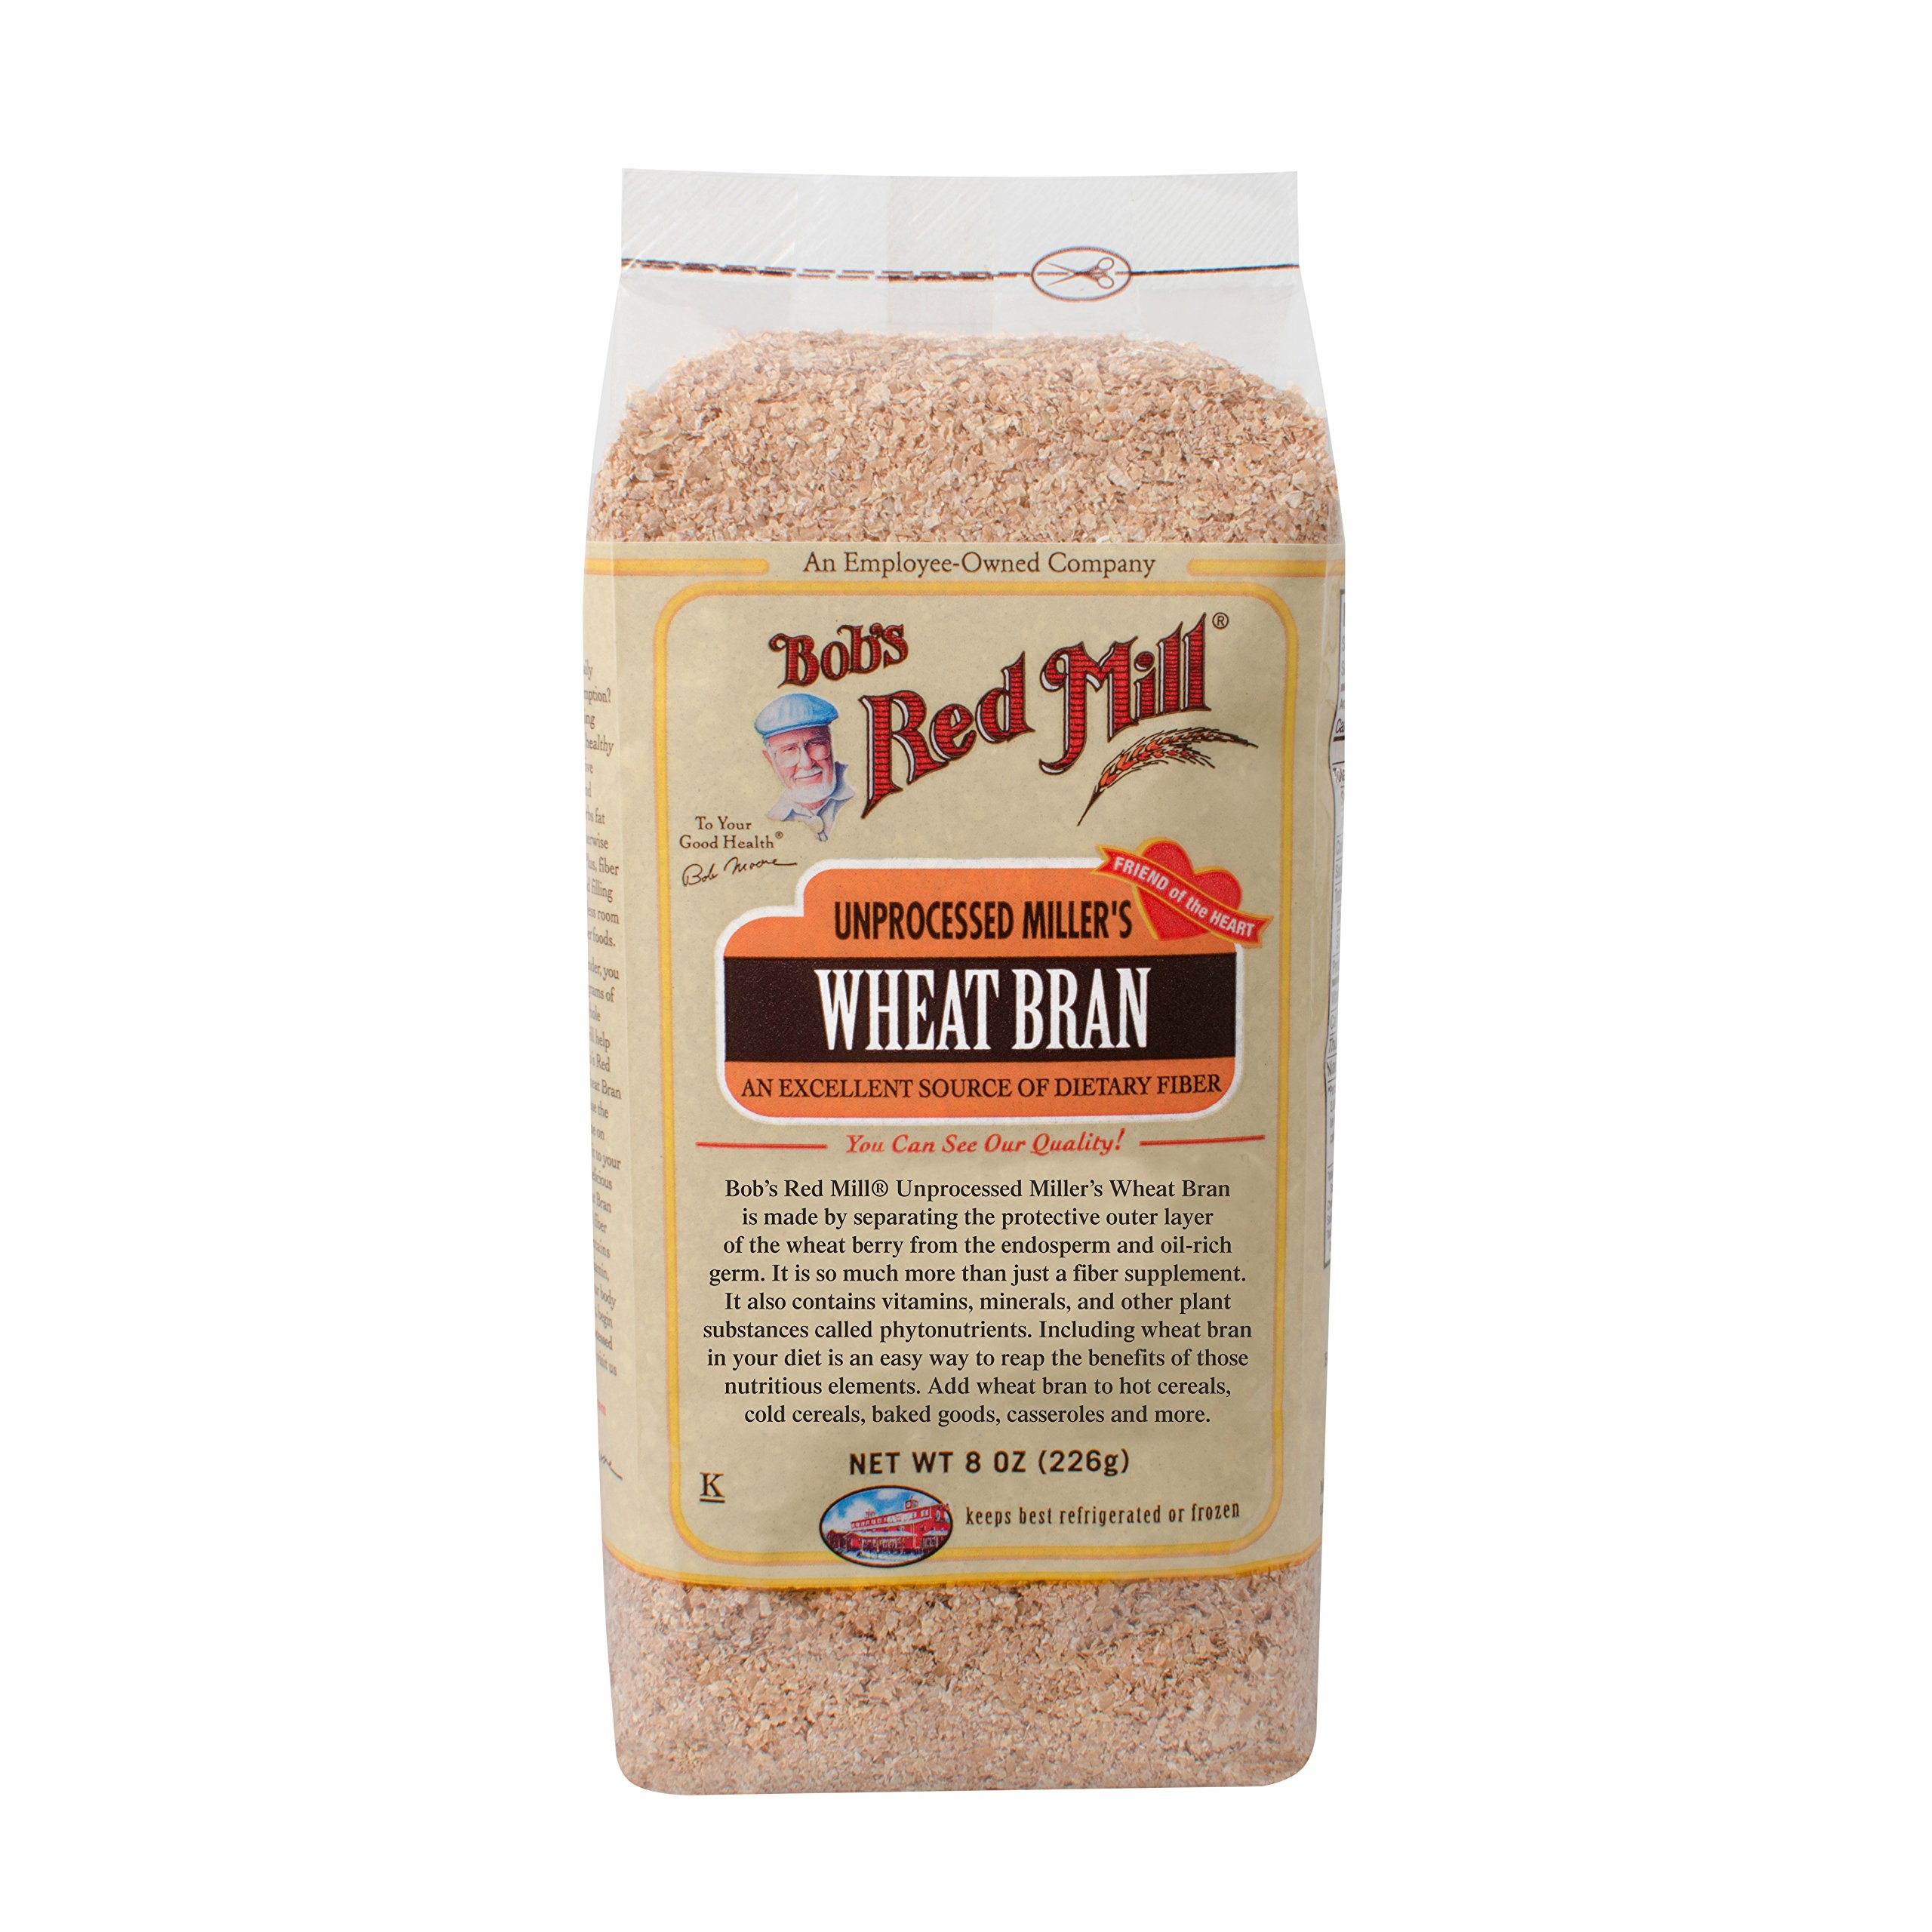 Bob's Red Mill Unprocessed Miller's Wheat Bran, 8 Ounce